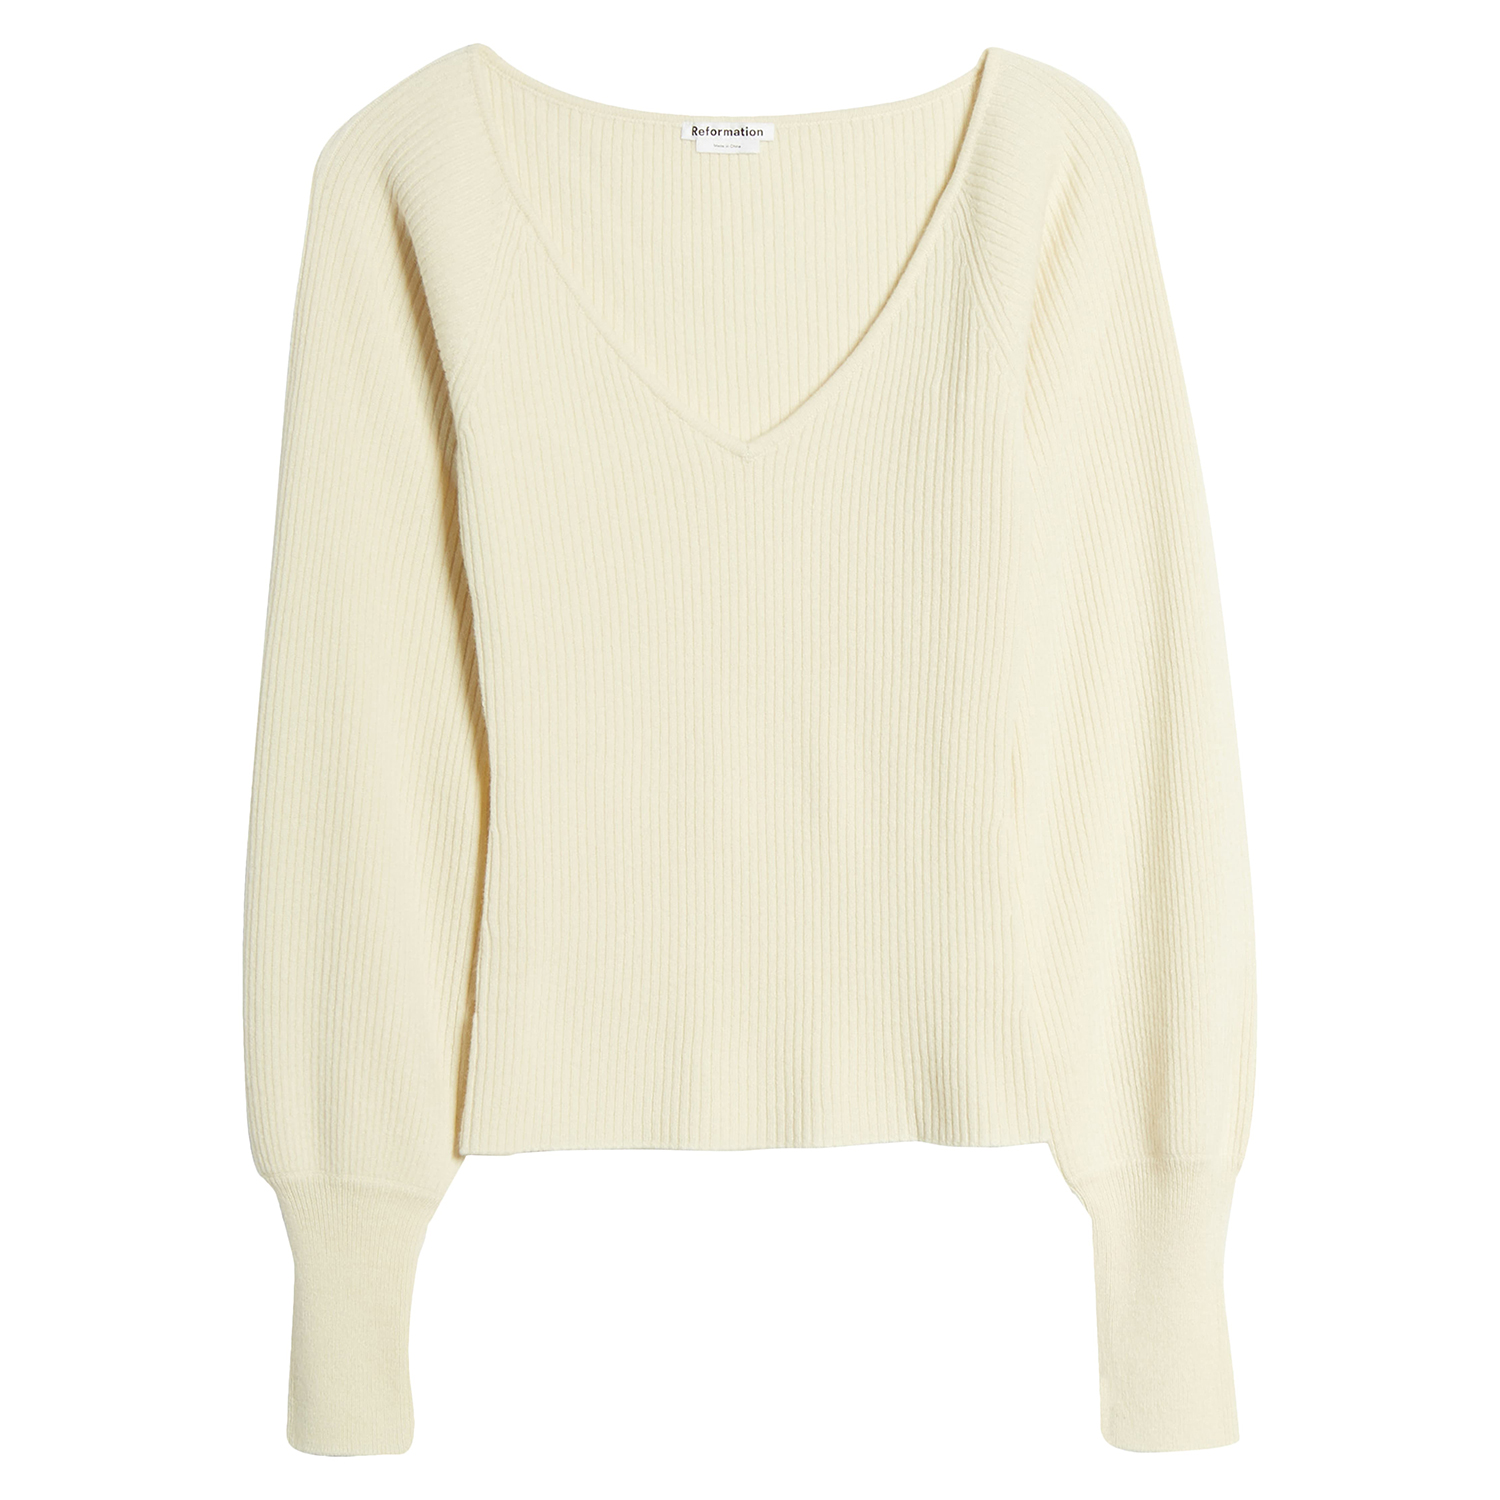 Reformation Hart Wide Neck Sweater